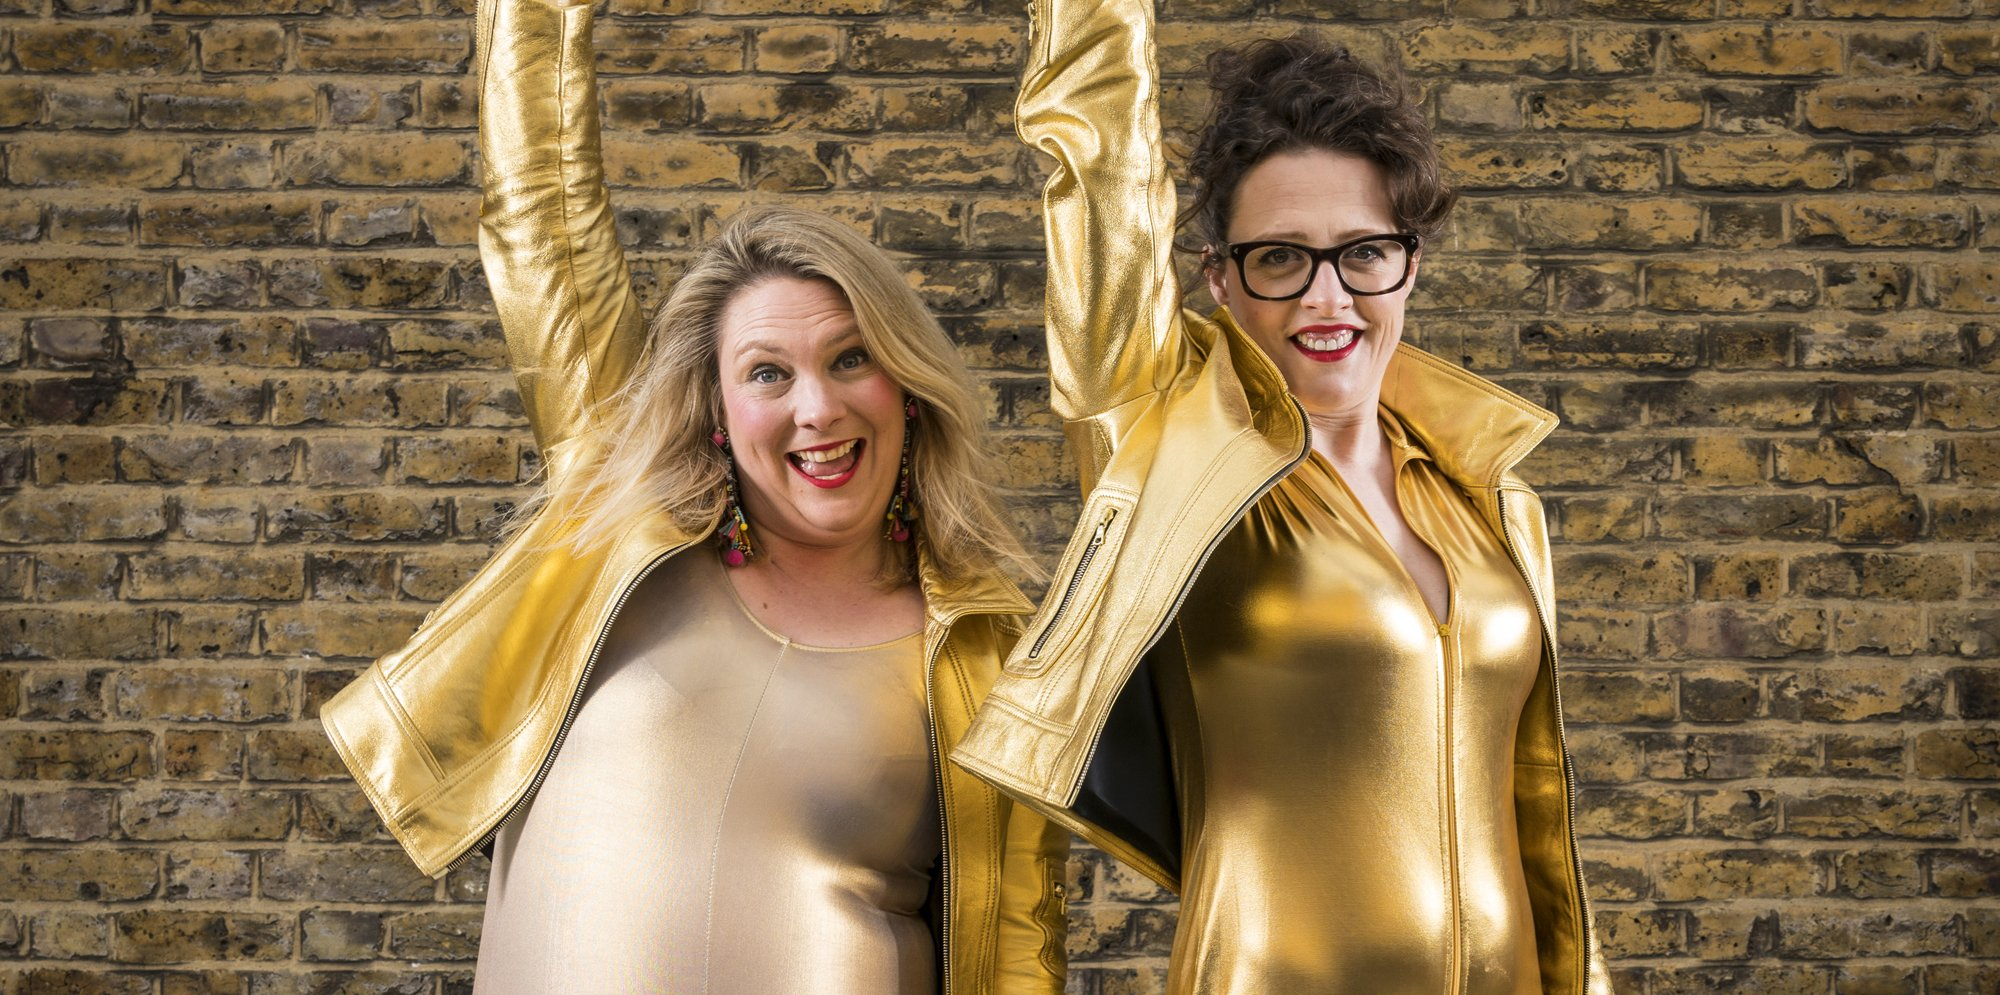 Two women in gold clothing smile at the camera.